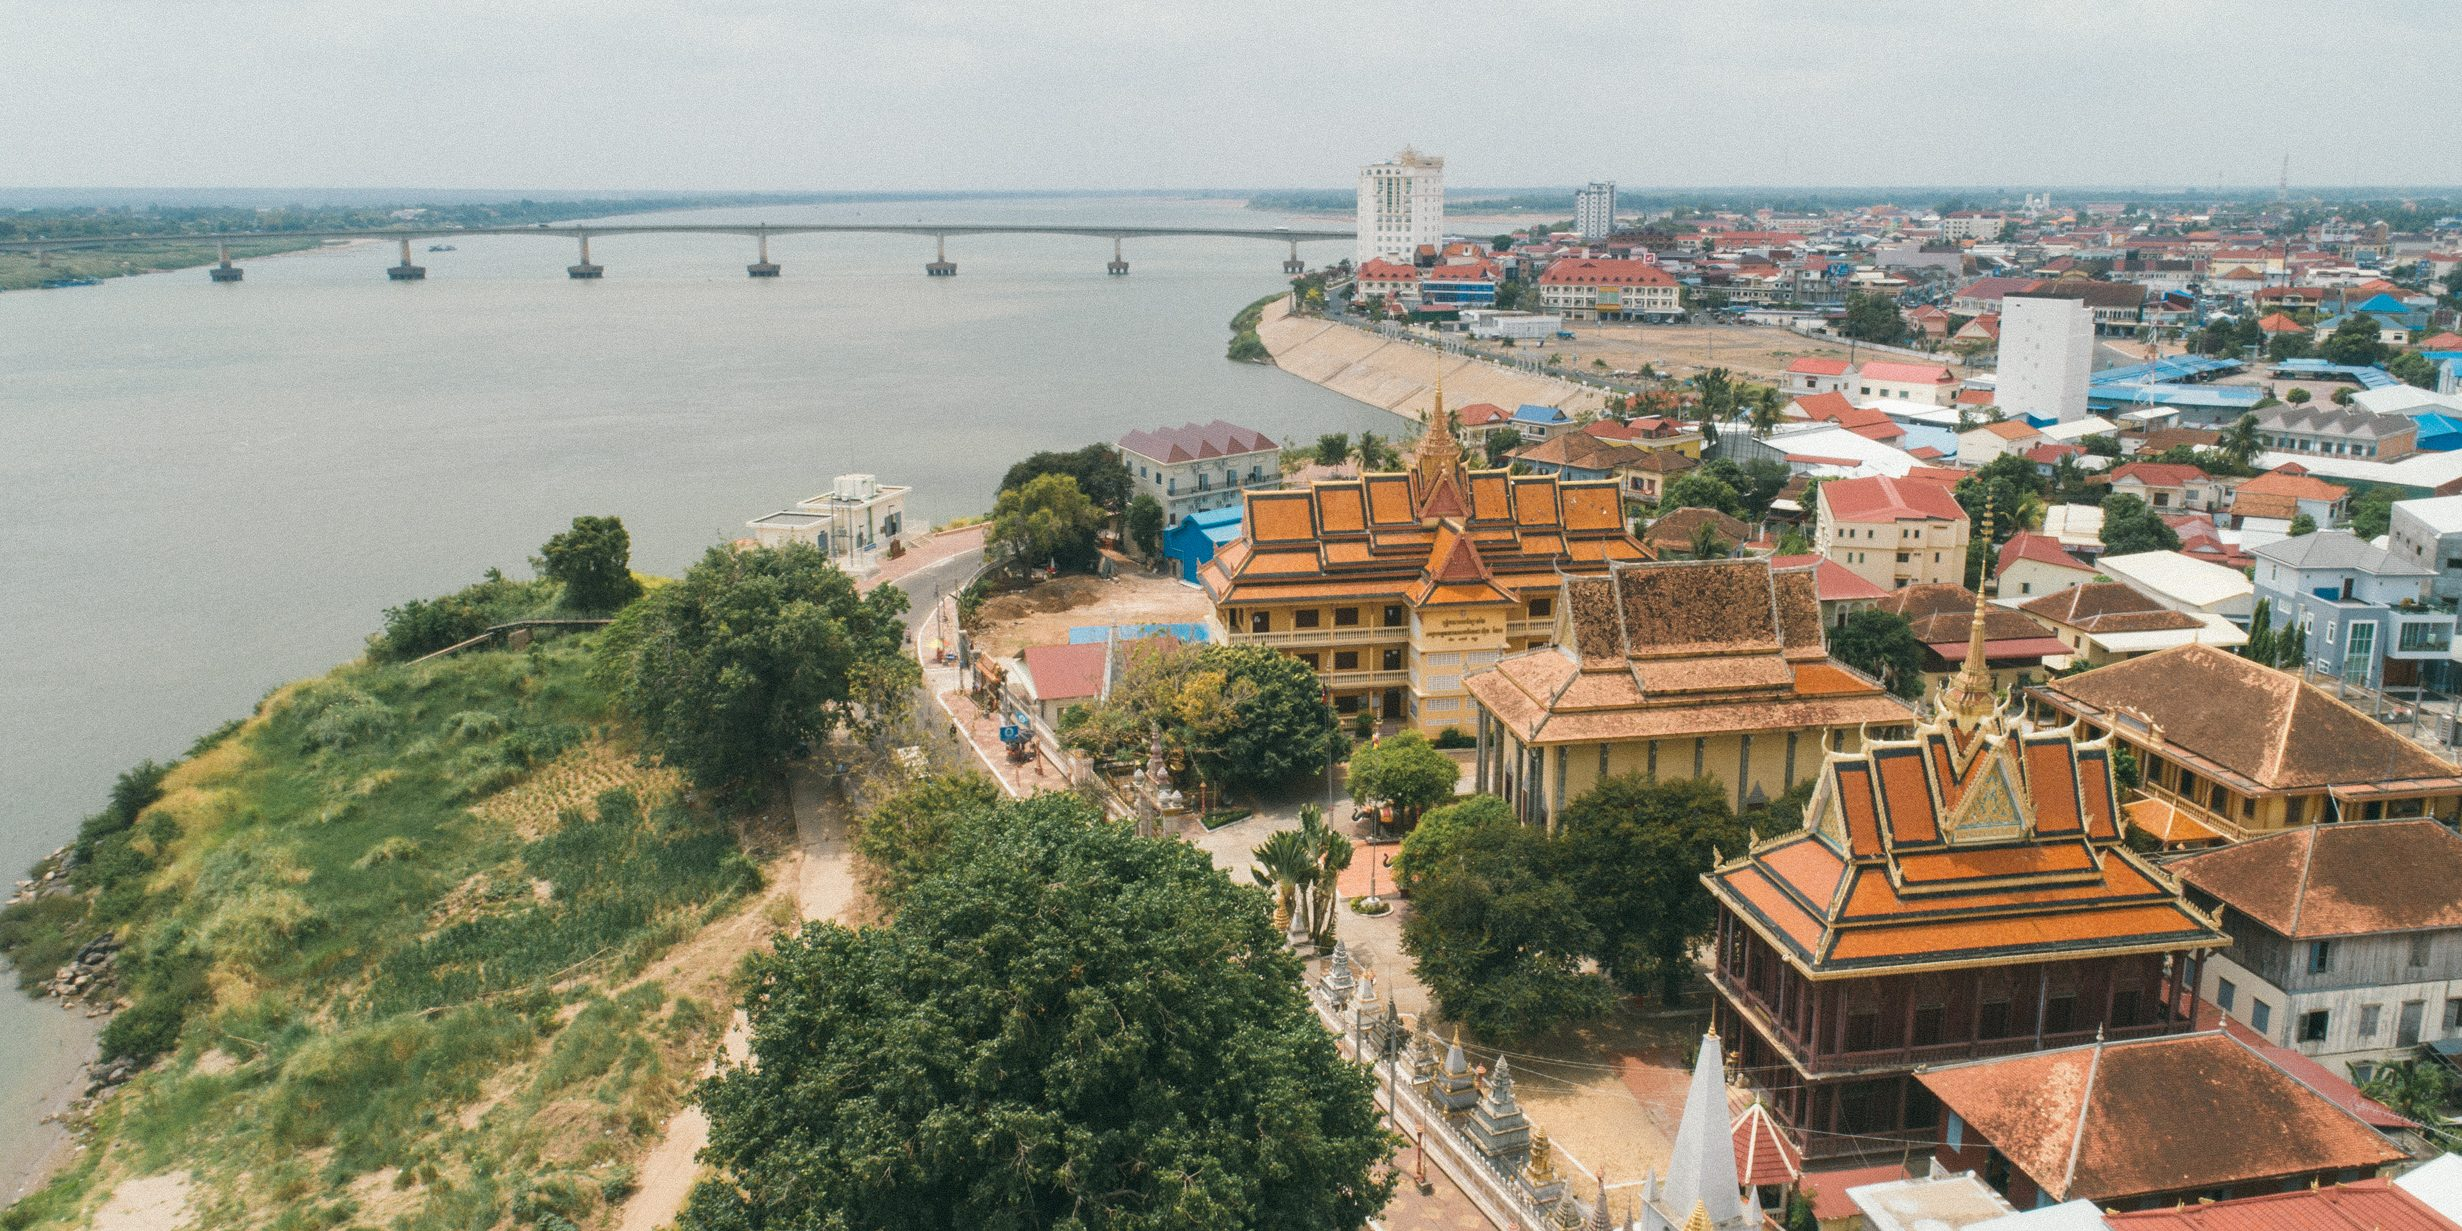 Gap year opportunities could take you to the city of Kampong Cham, beside the Mekong river.